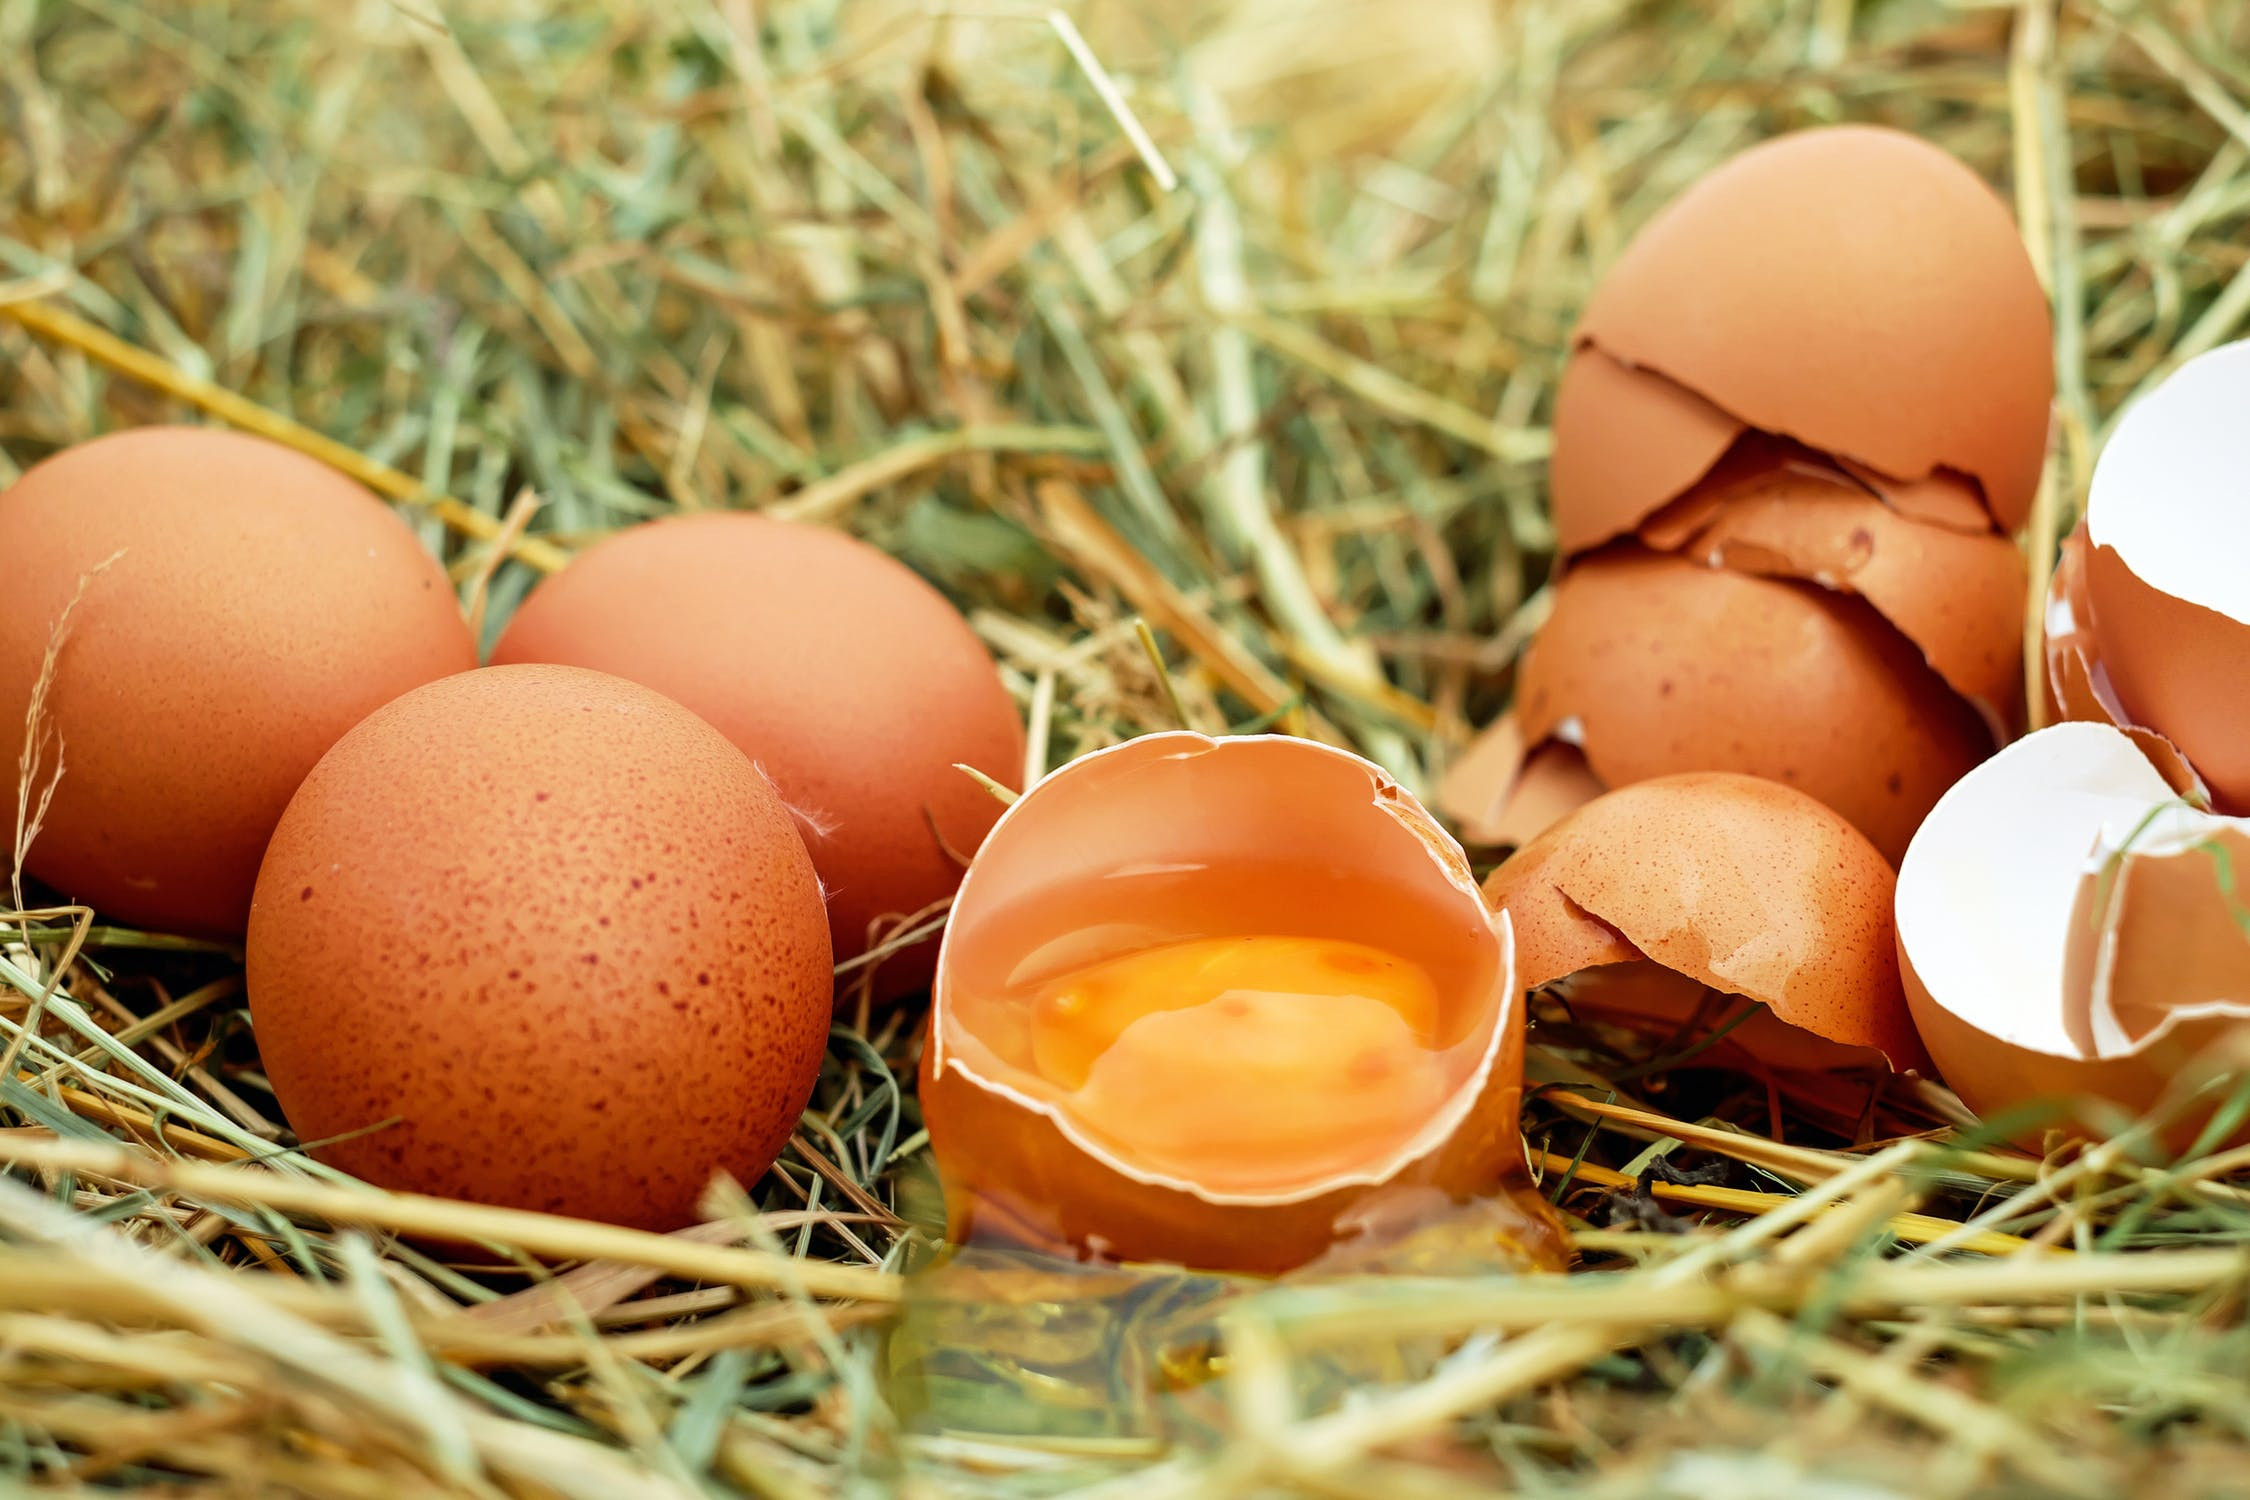 Why egg inventory can be a challenge